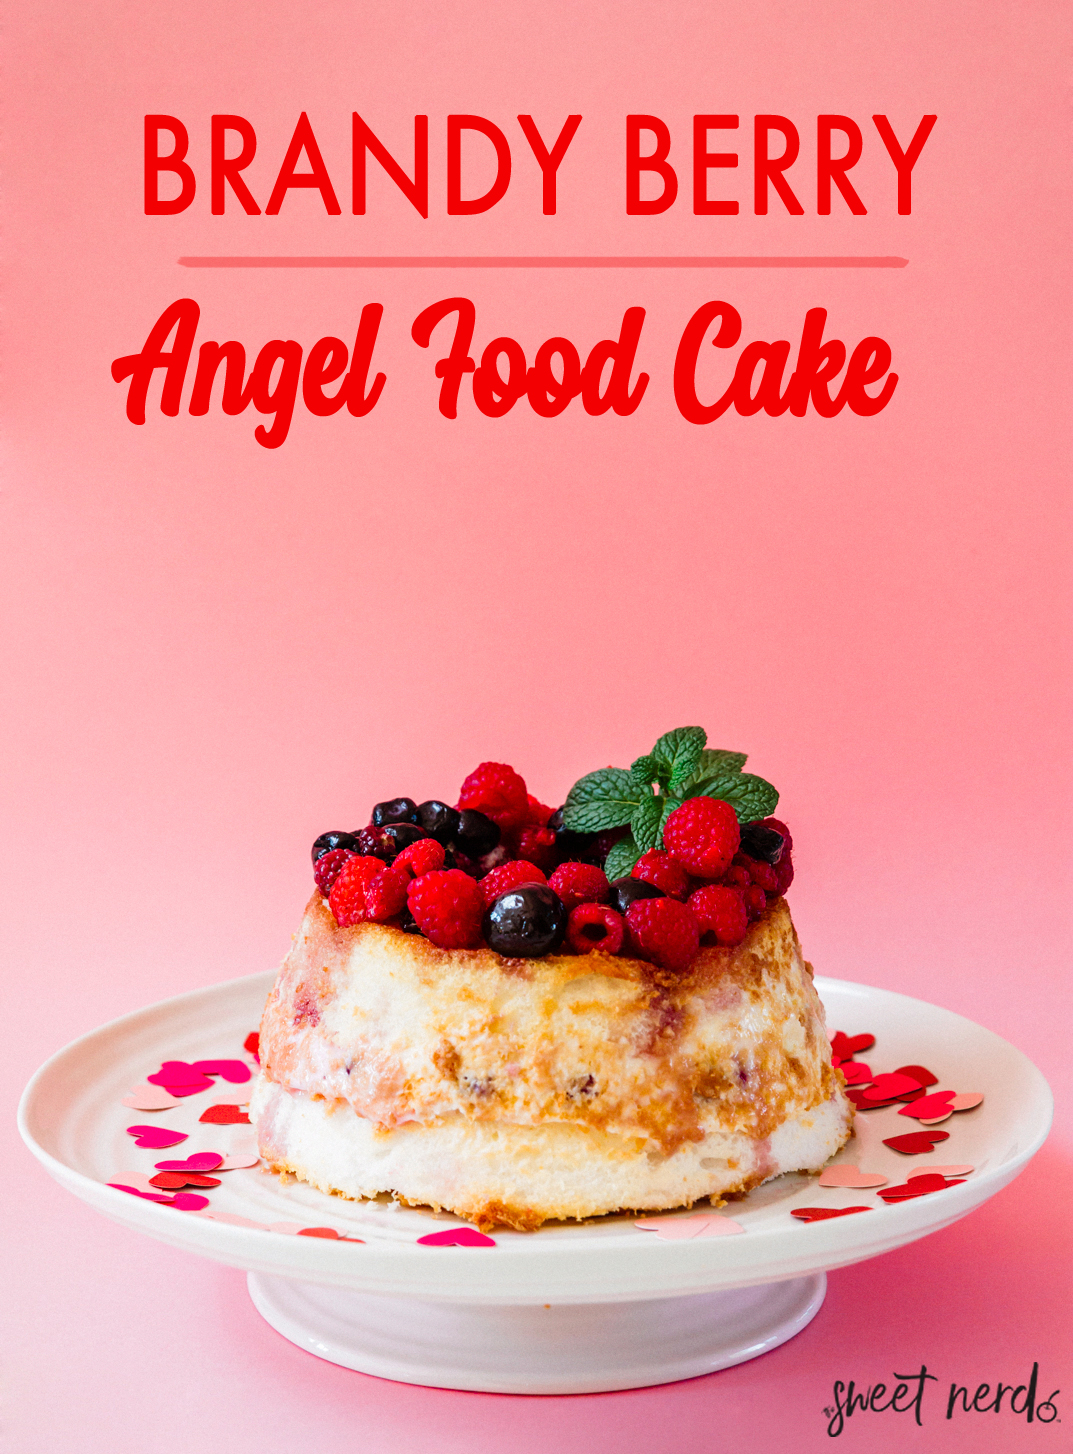 Brandy Berry Angel Food Cake